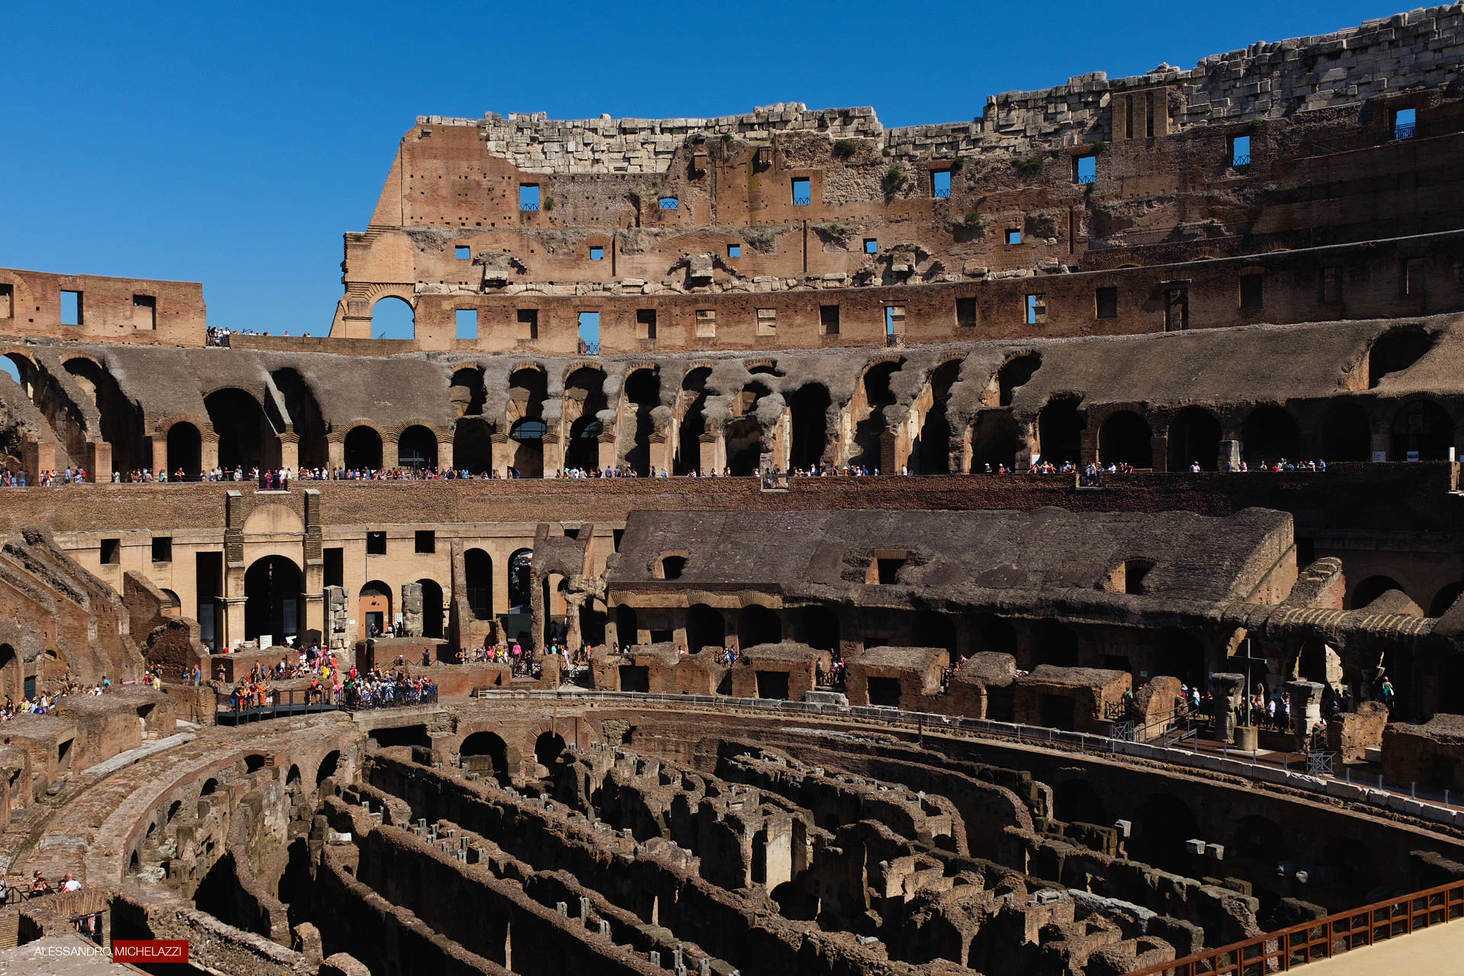 Inside the Colosseo in Rome